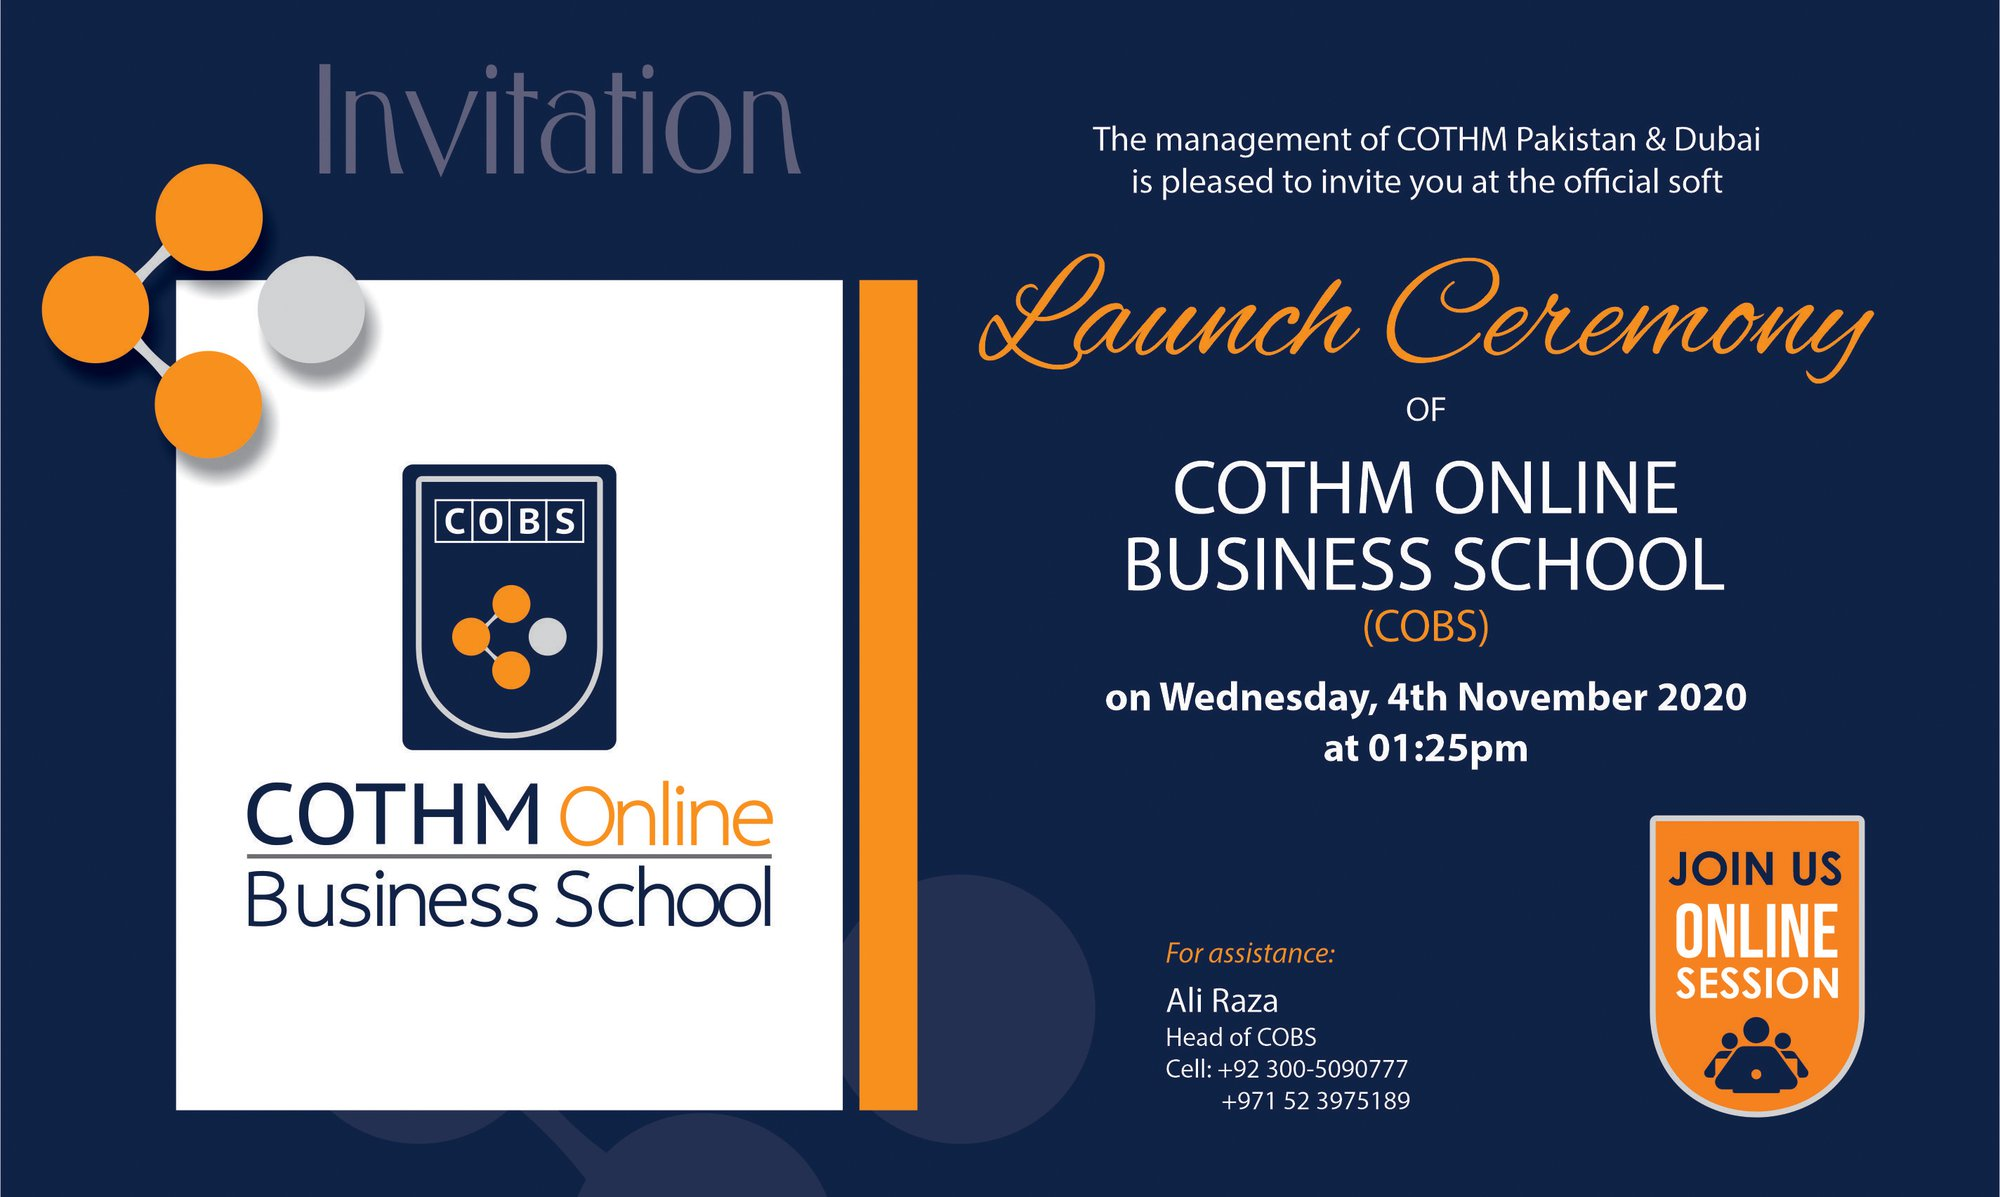 Join LIVE soft launch of COTHM Online Business School